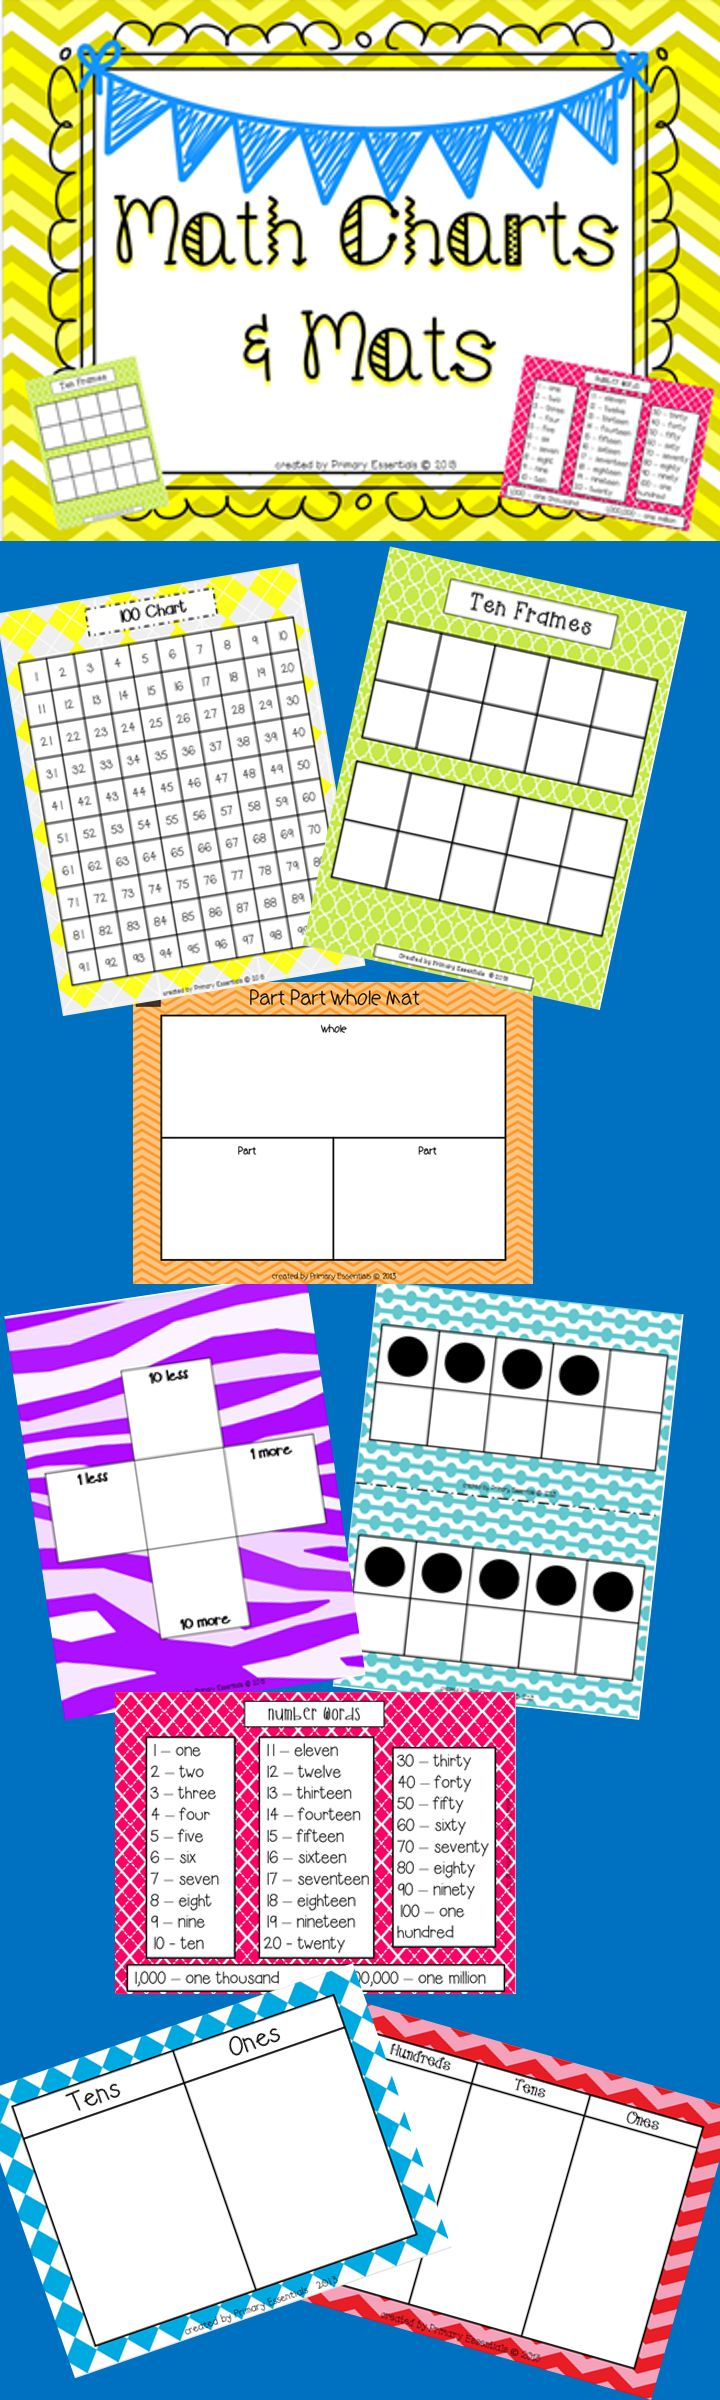 math charts and mats 100 chart 120 chart tens ones mat hundreds tens